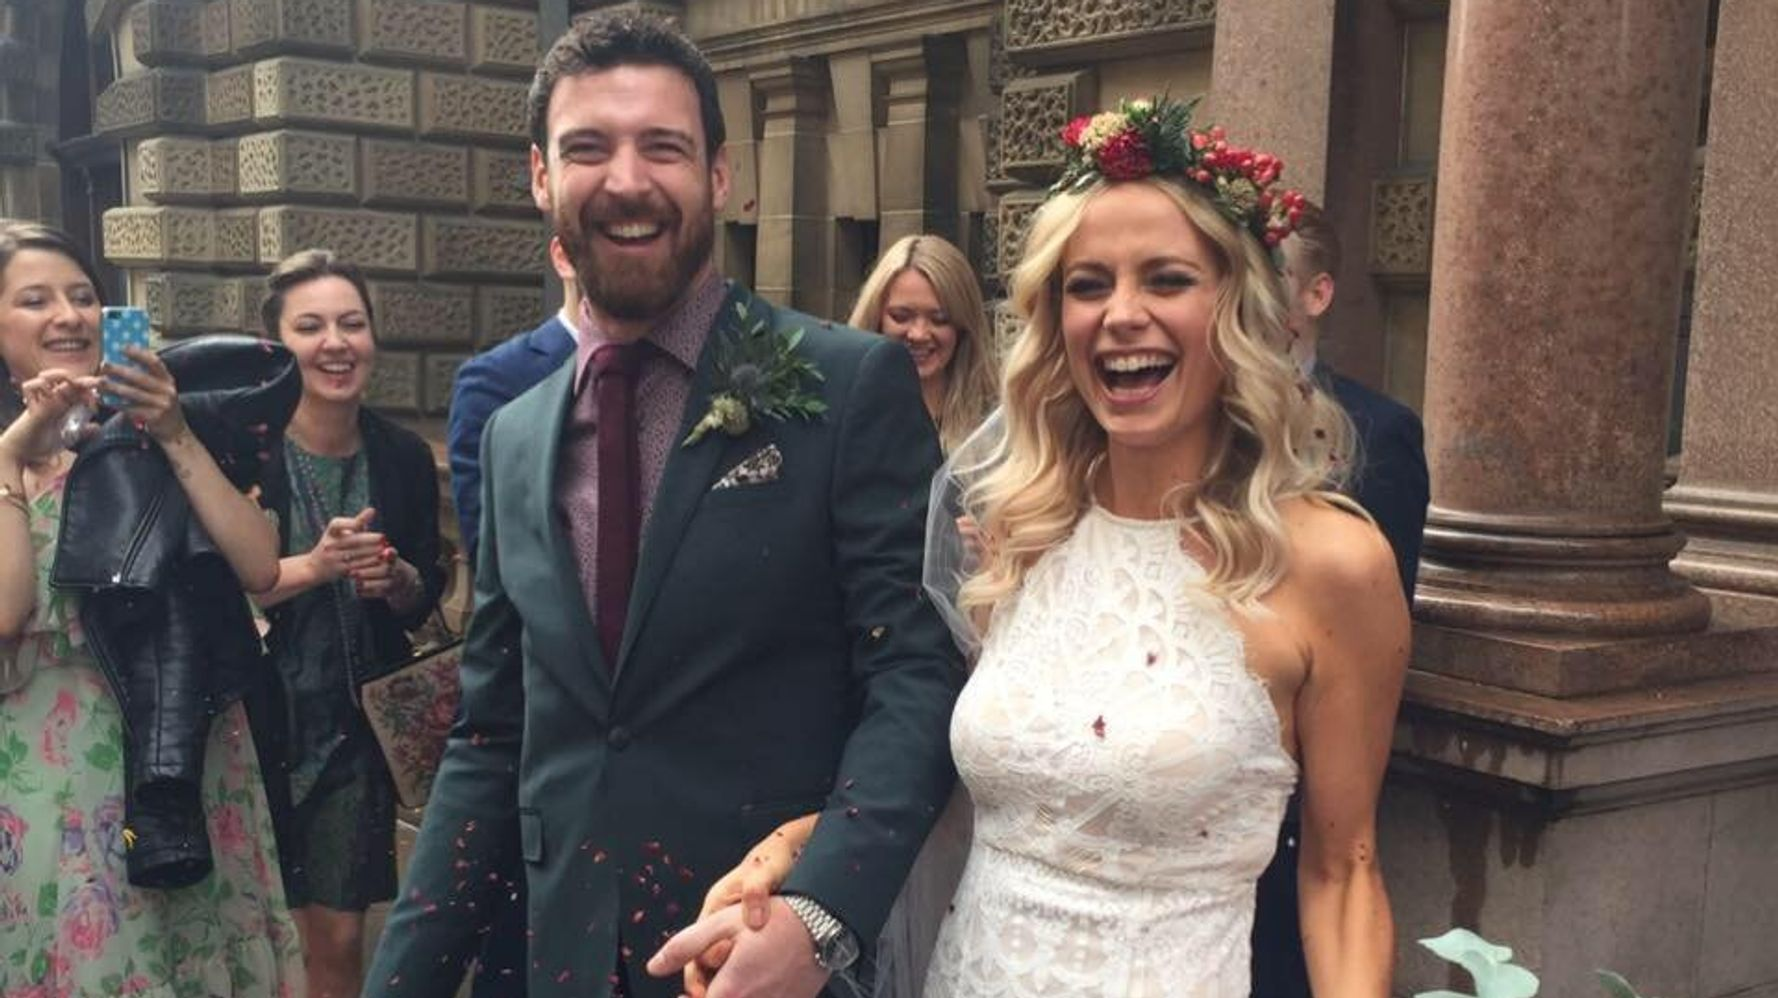 How To Have A Cheap Wedding: Meet The Thrifty Couples Who Kept Costs Low